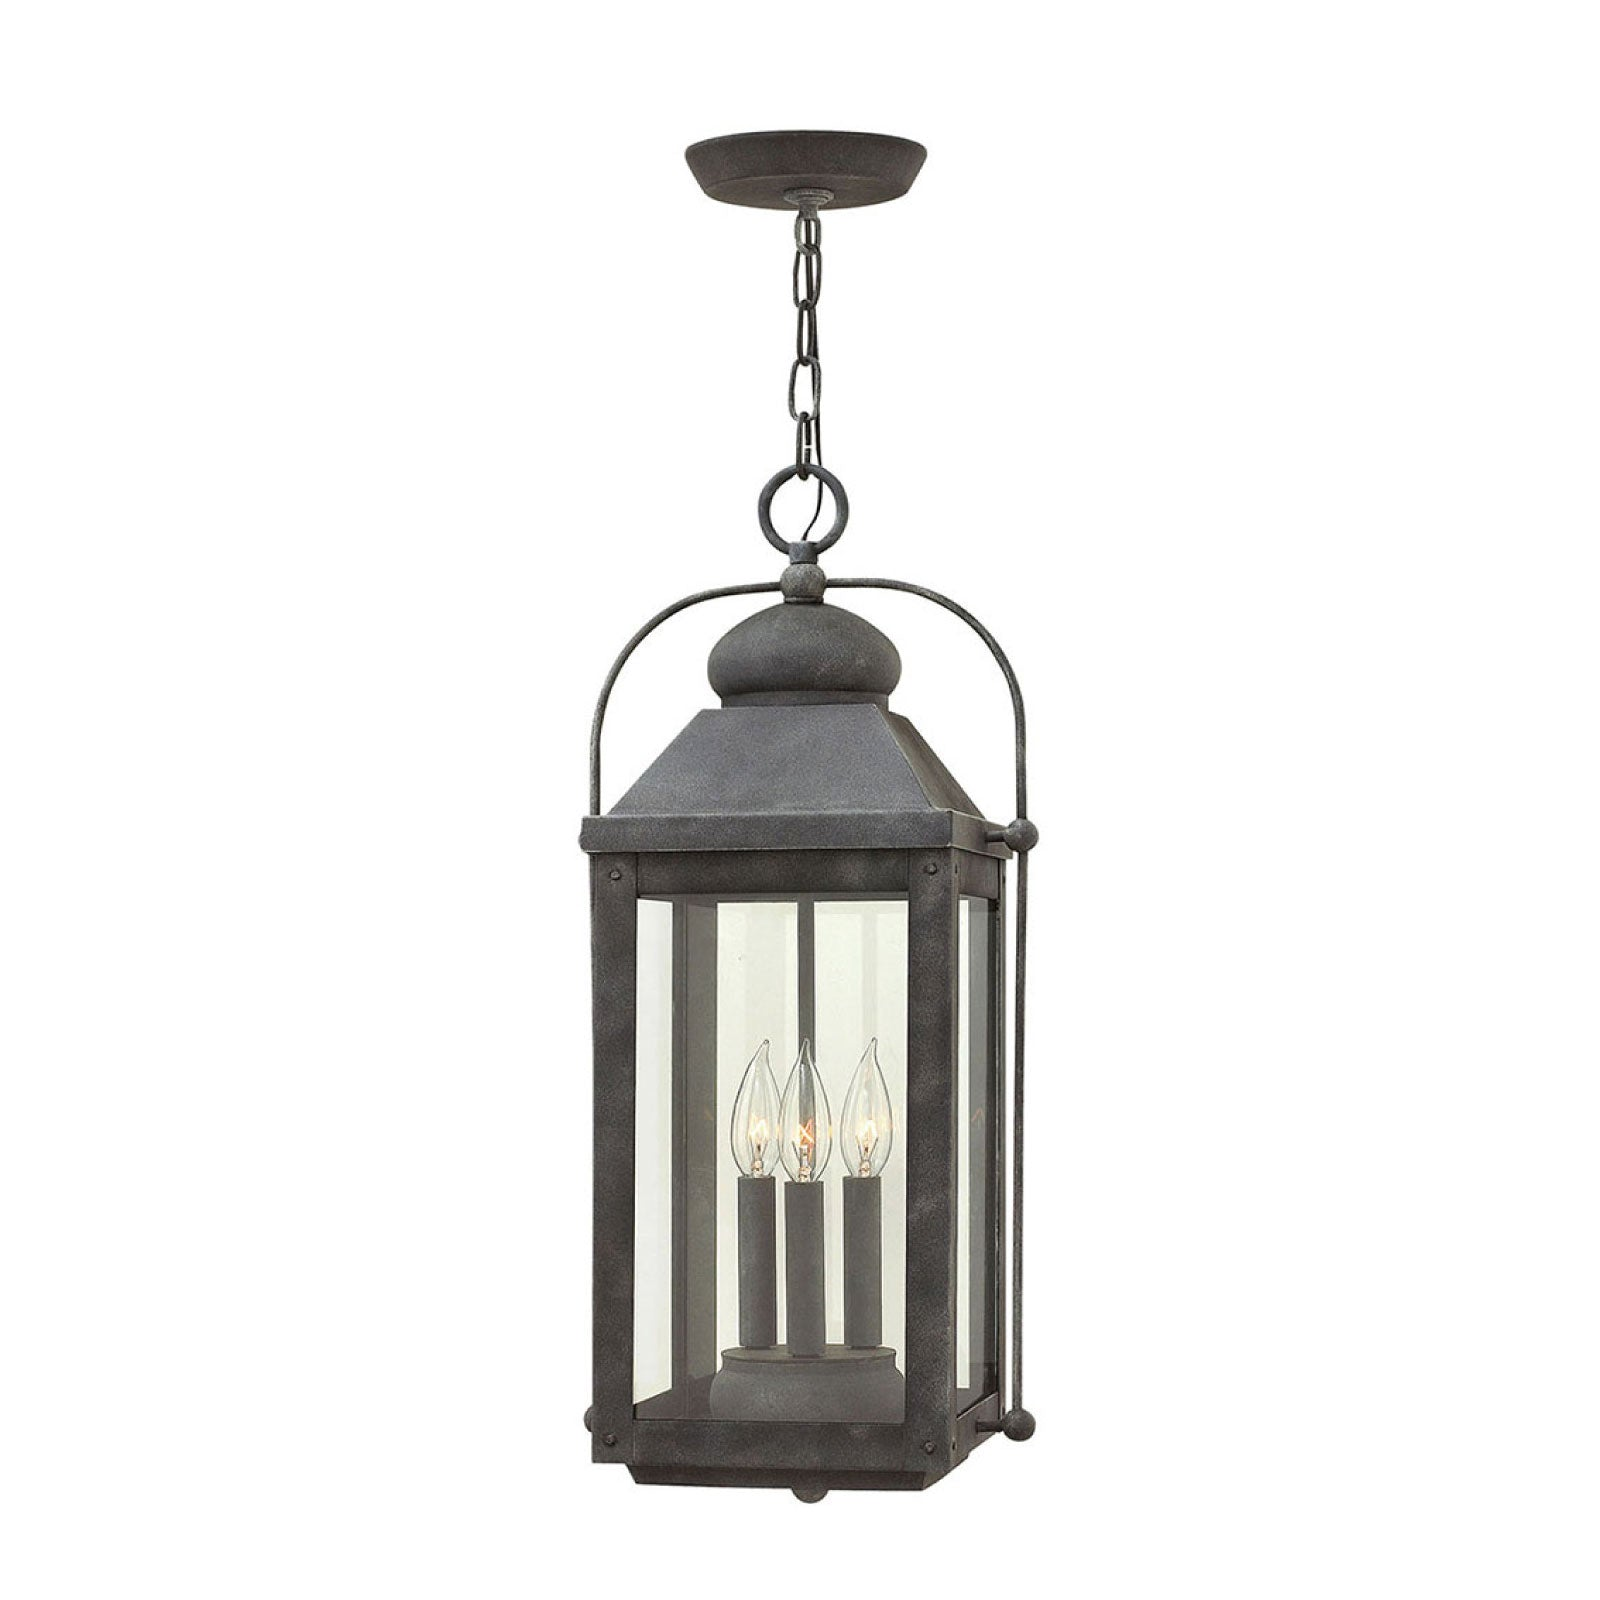 Lincoln Hanging Lantern in Zinc